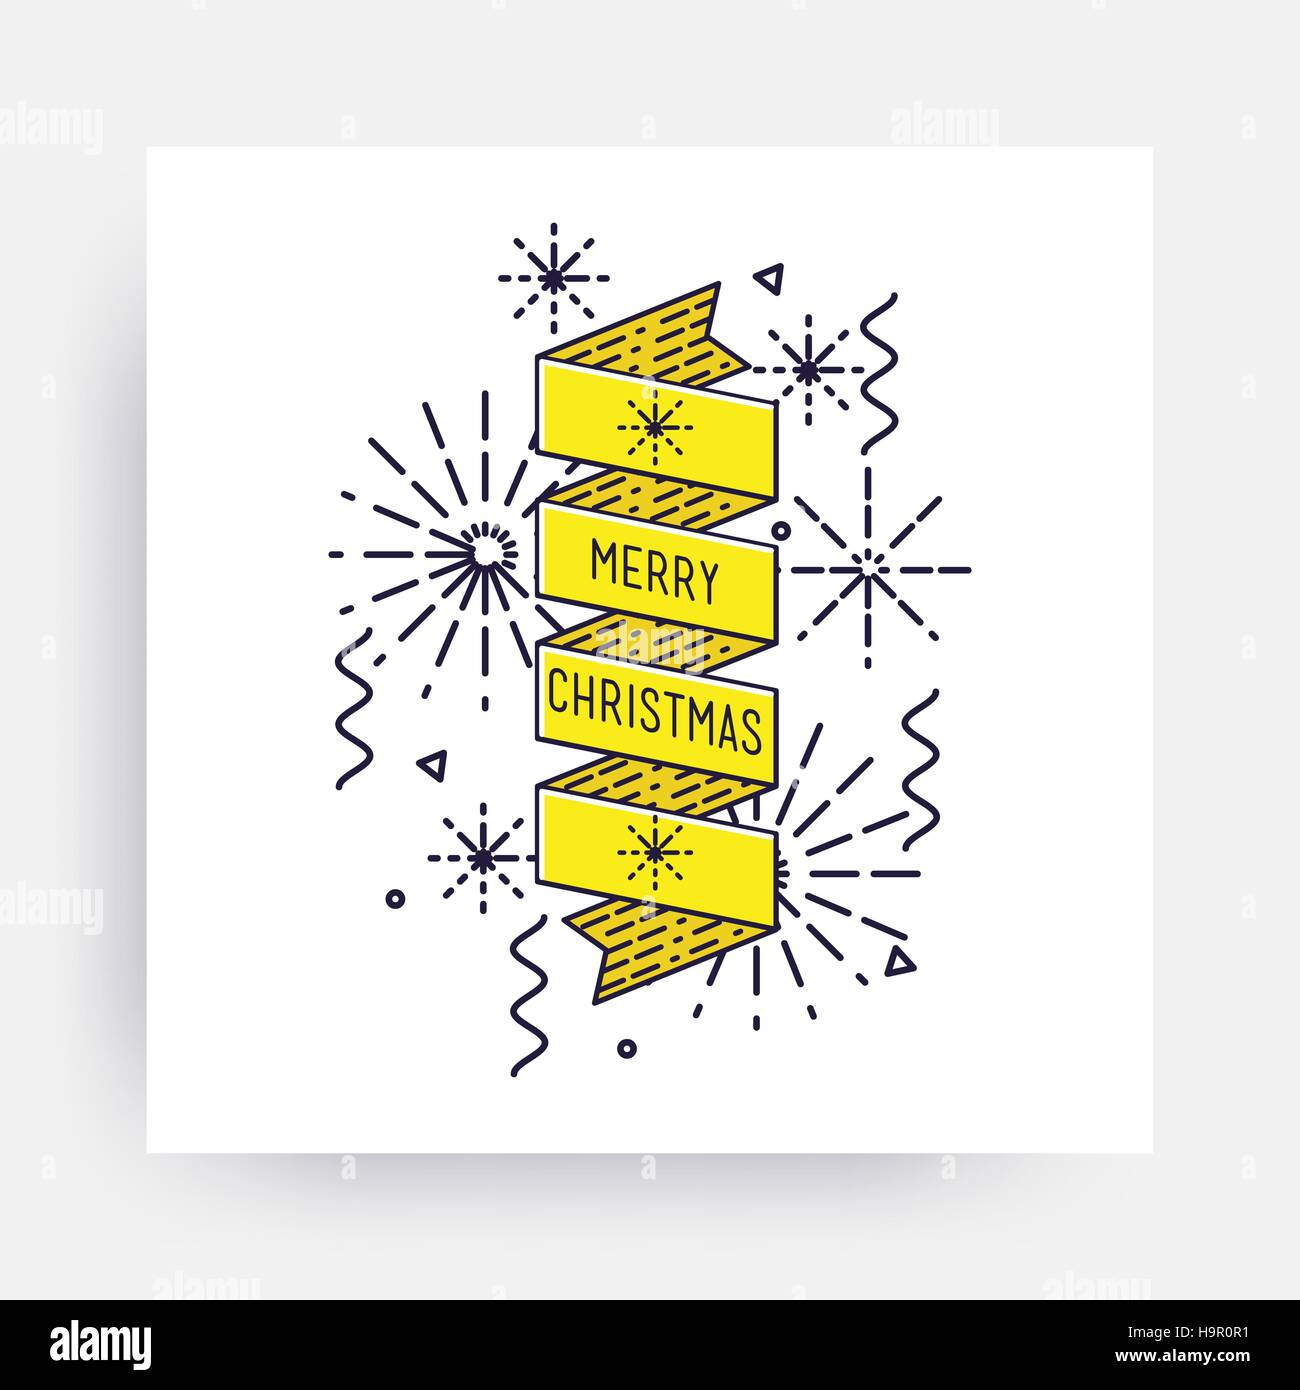 Merry christmas new year design linear flat icon bright simple merry christmas new year design linear flat icon bright simple vector illustrations for greeting card posters print mobile phoned designs ads p m4hsunfo